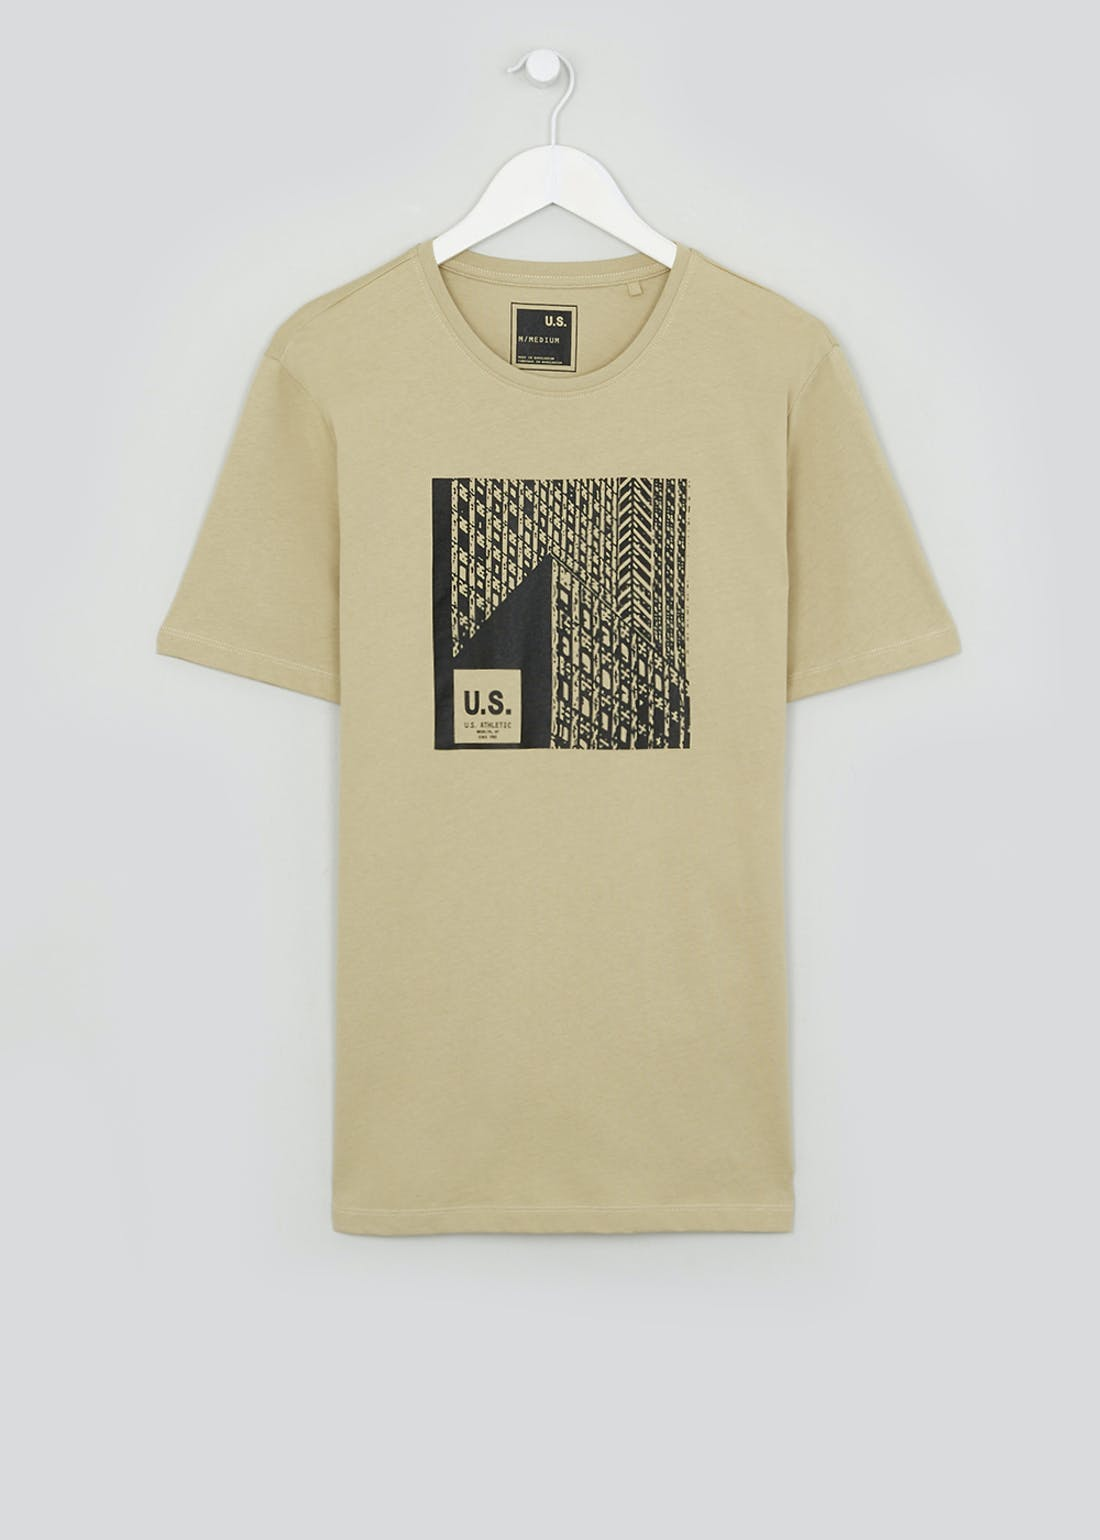 US Athletic New York Grid T-Shirt